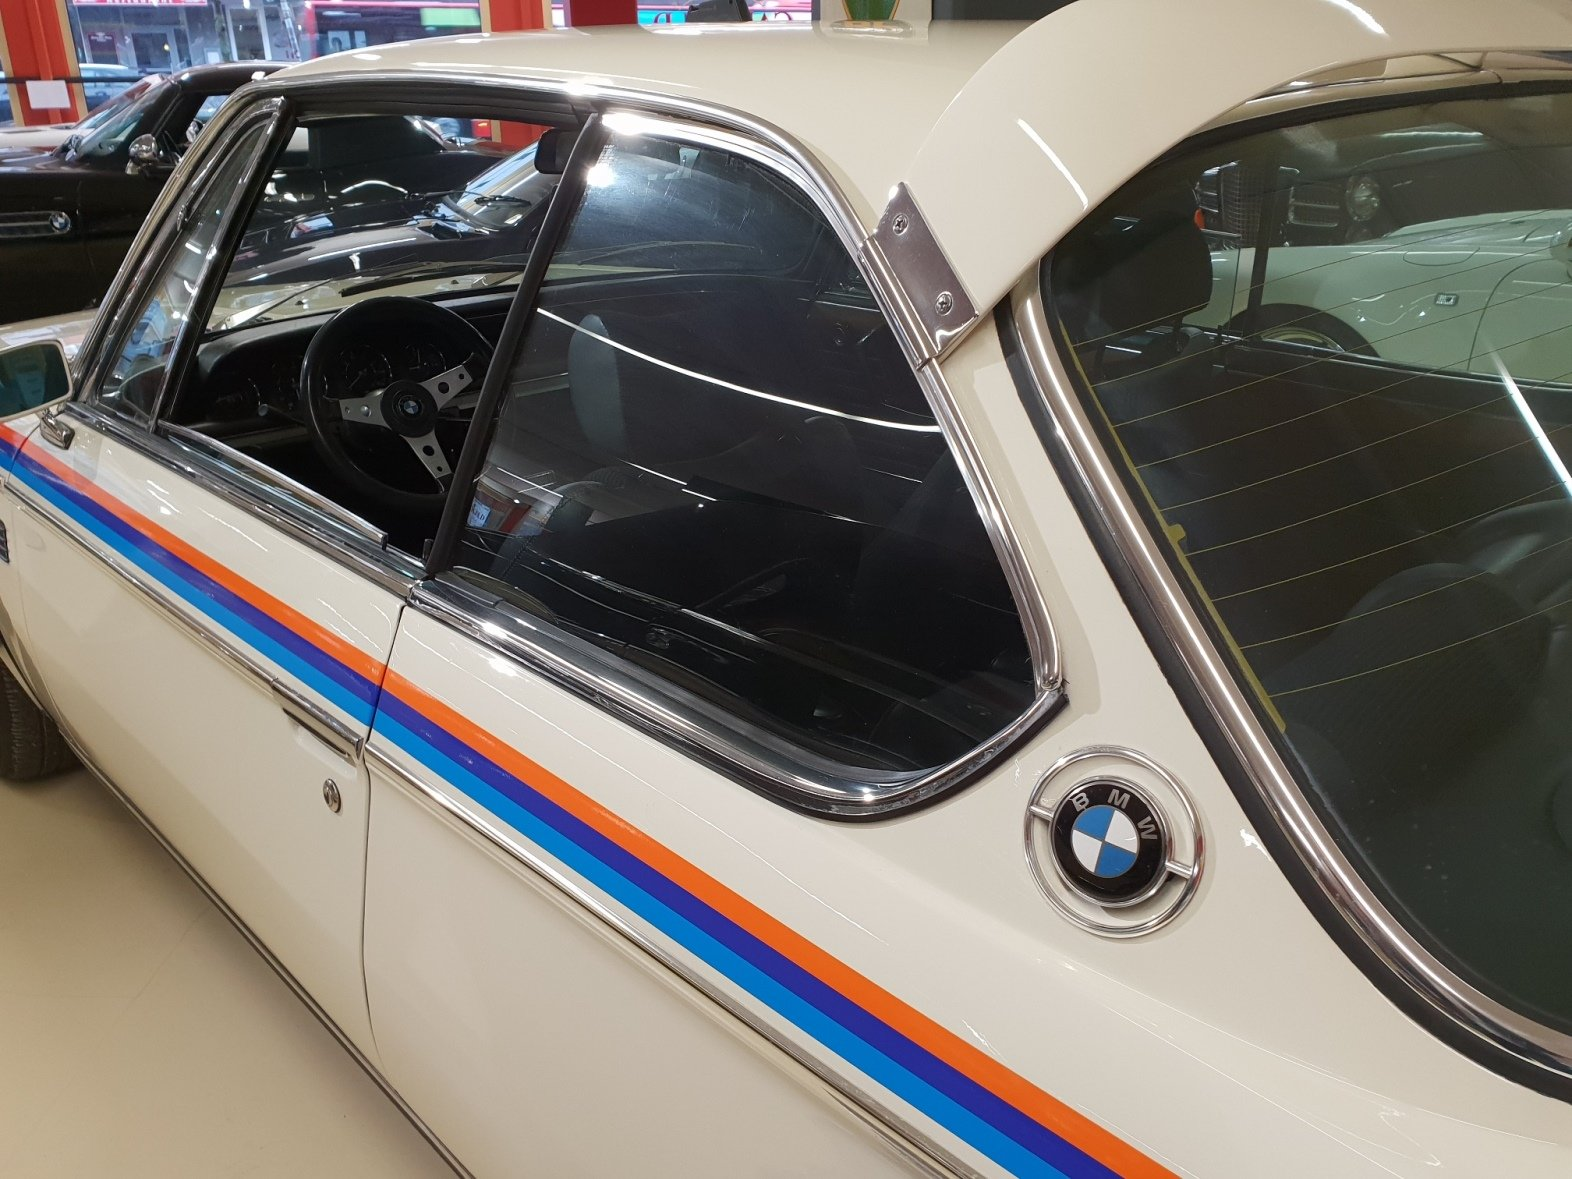 1974 BMW 3.0 CSL Batmobile For Sale (picture 4 of 6)